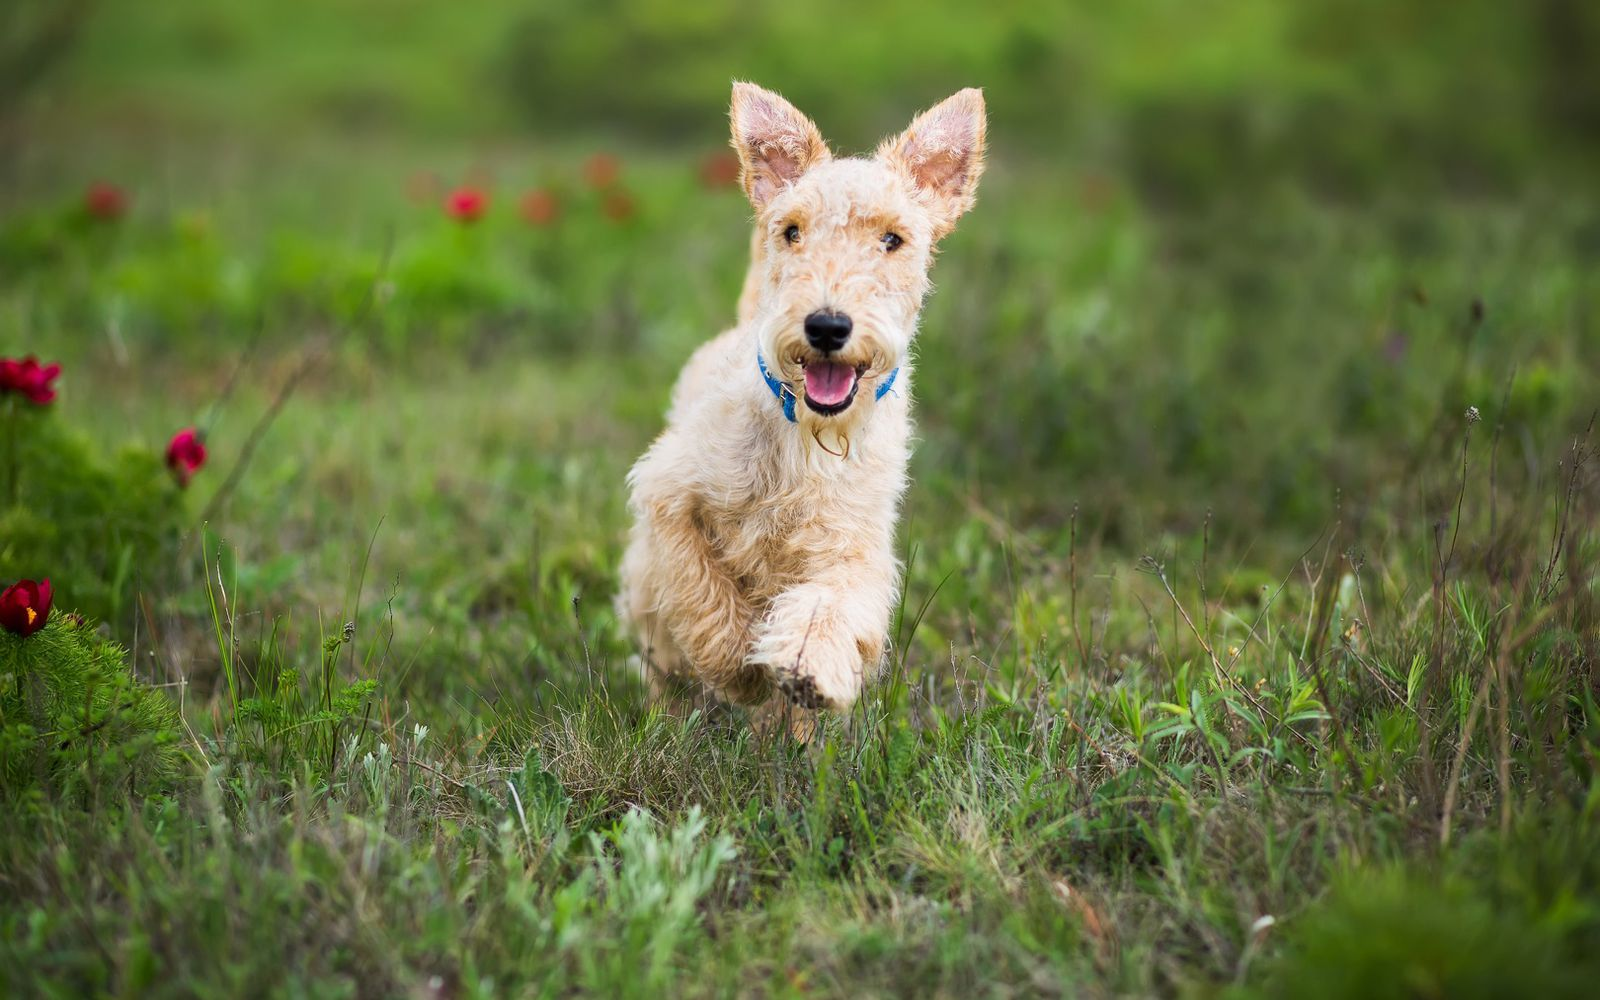 Lakeland Terrier - Puppy